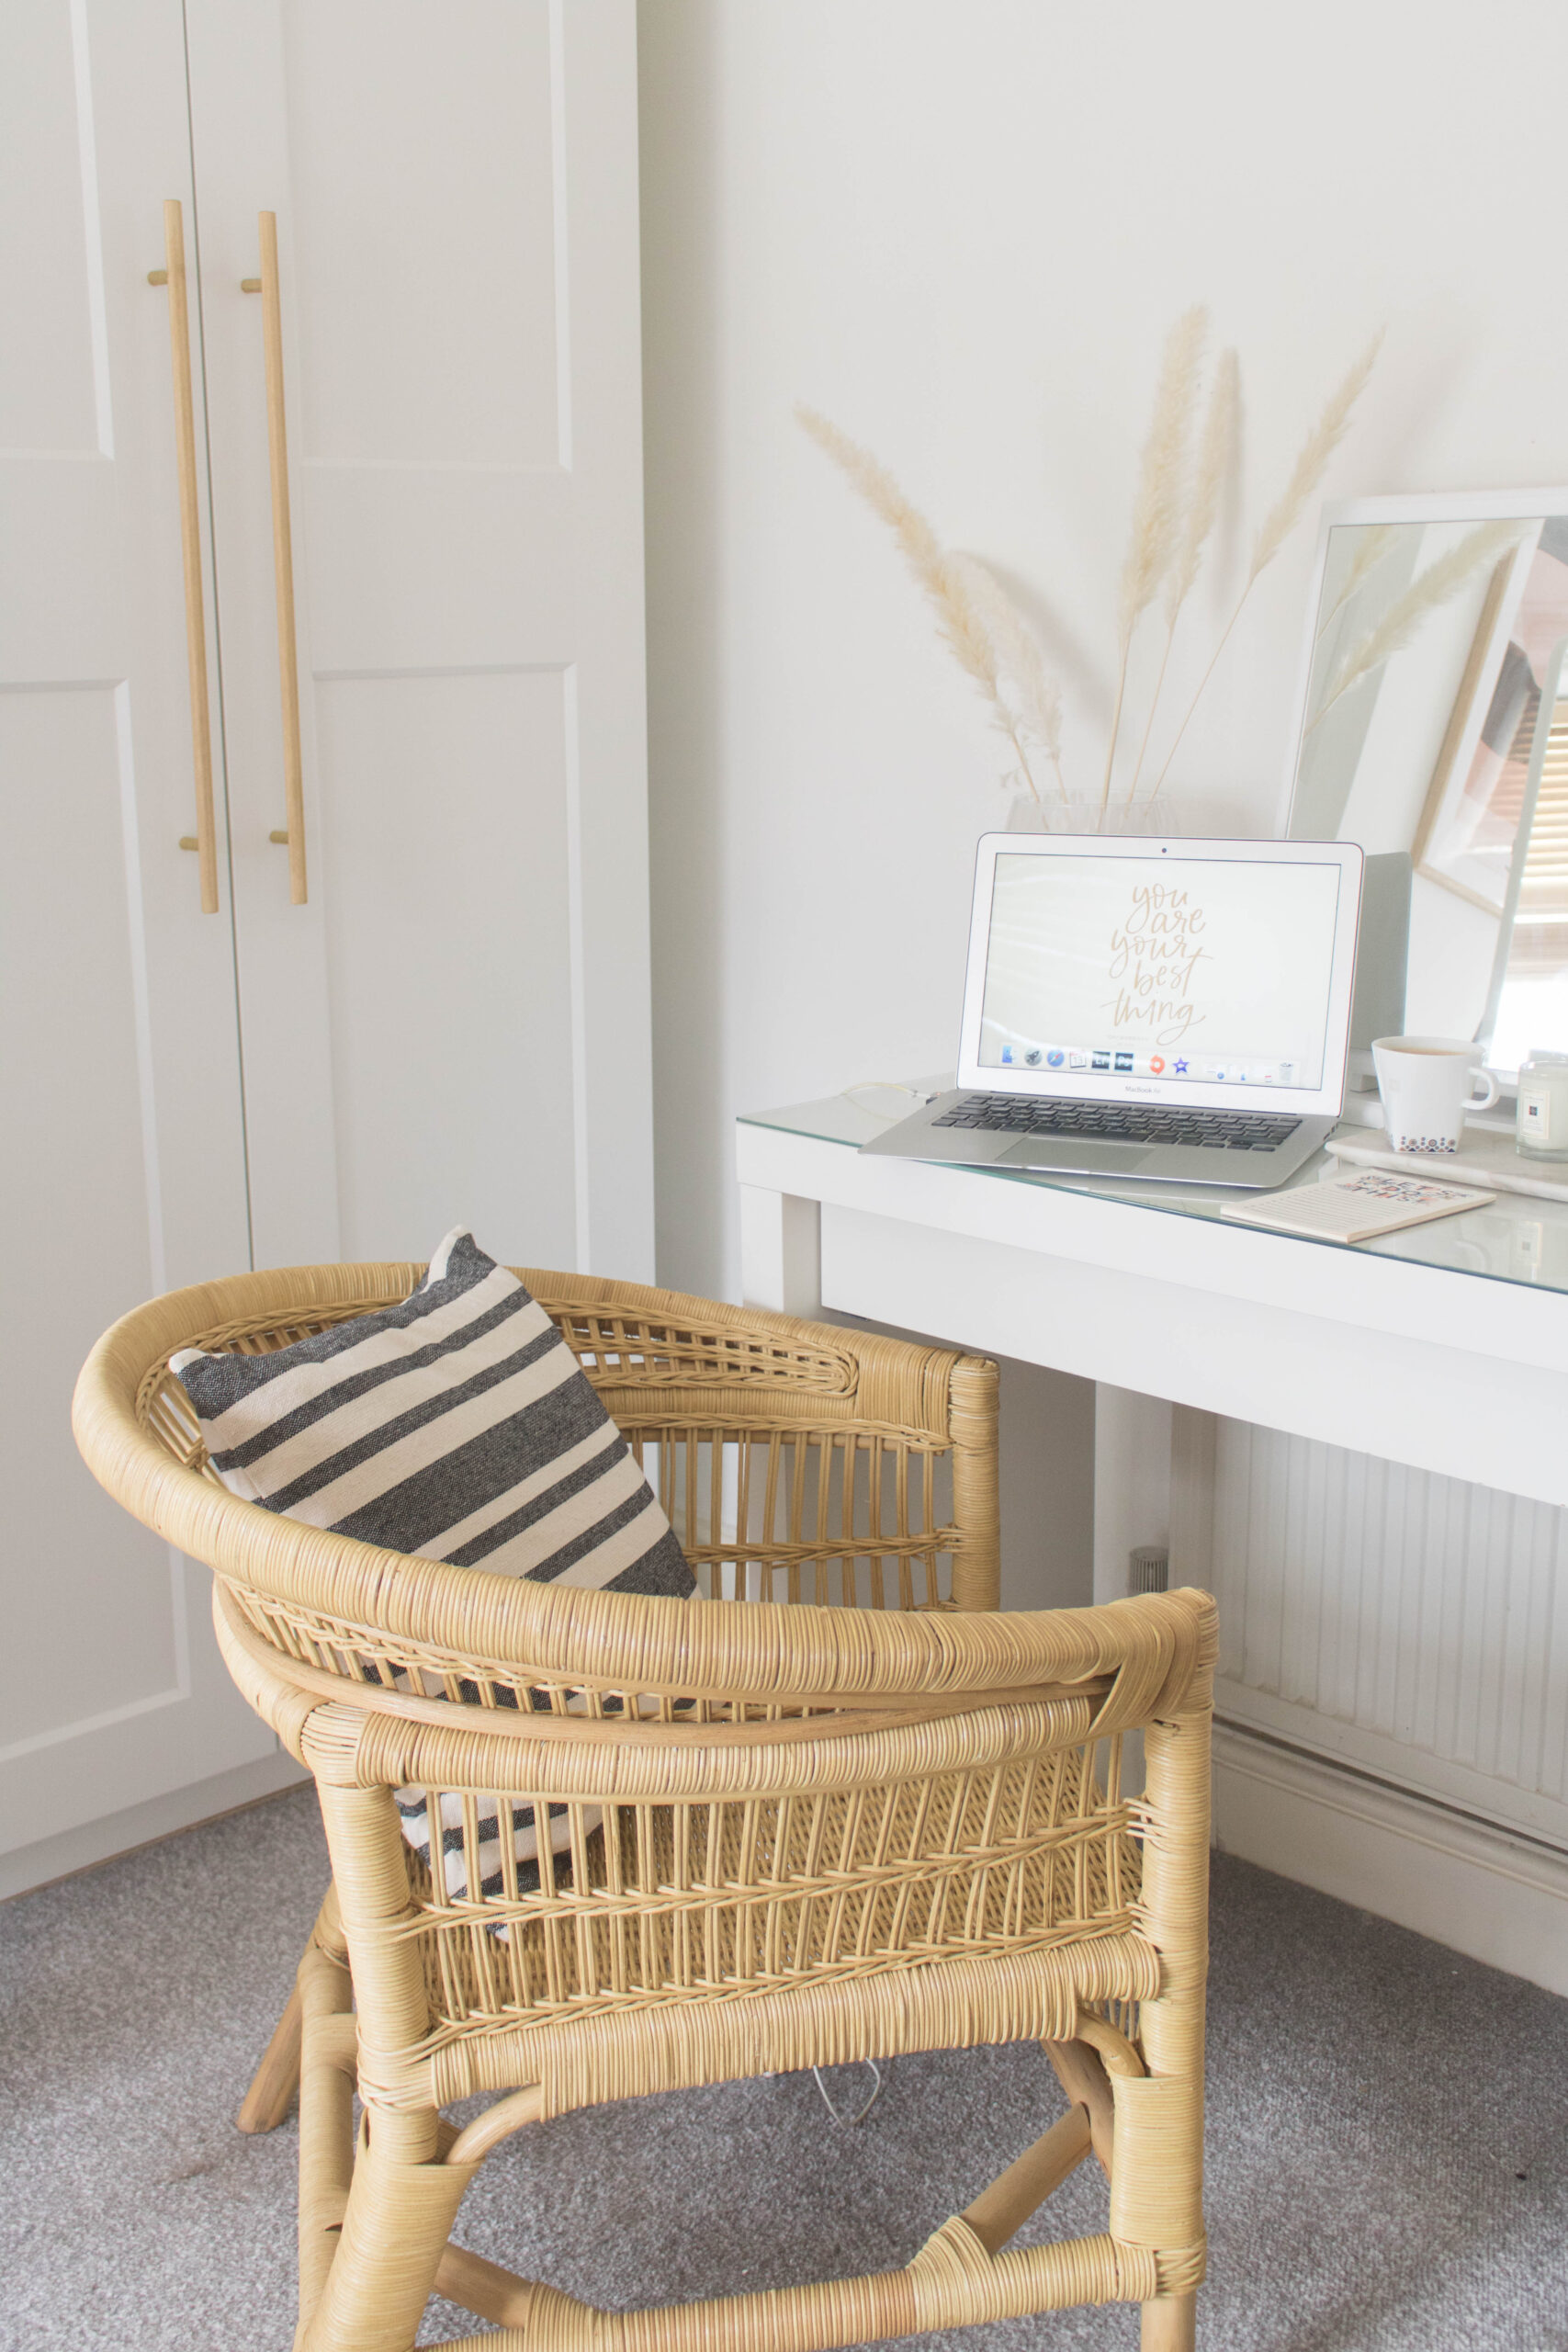 Productivity Hacks to Use While Working From Home